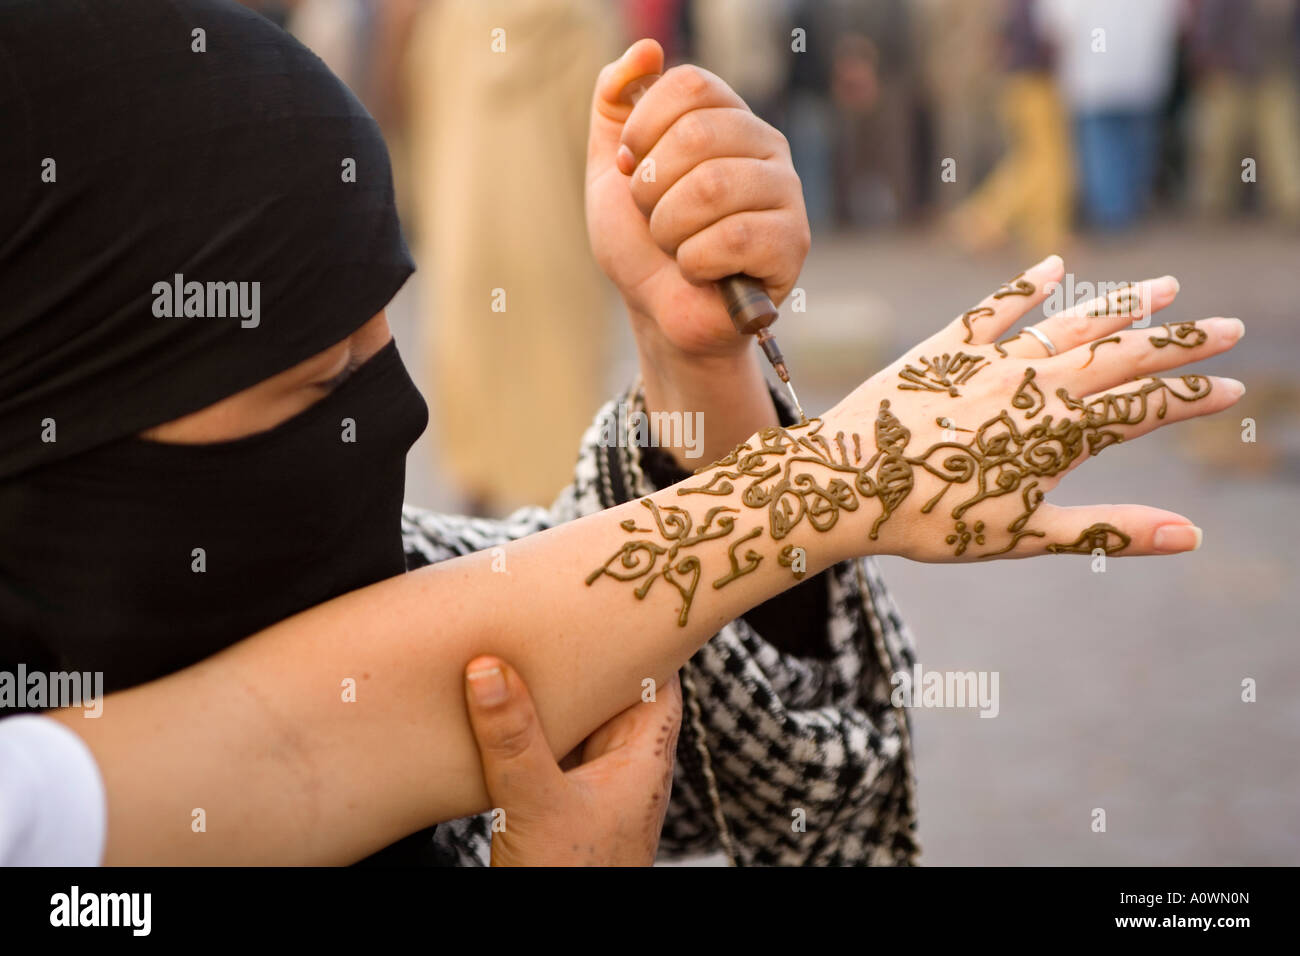 Mehndi Tattoo For Hand : Woman applying a henna tattoo on tourists hand in the djemaa el